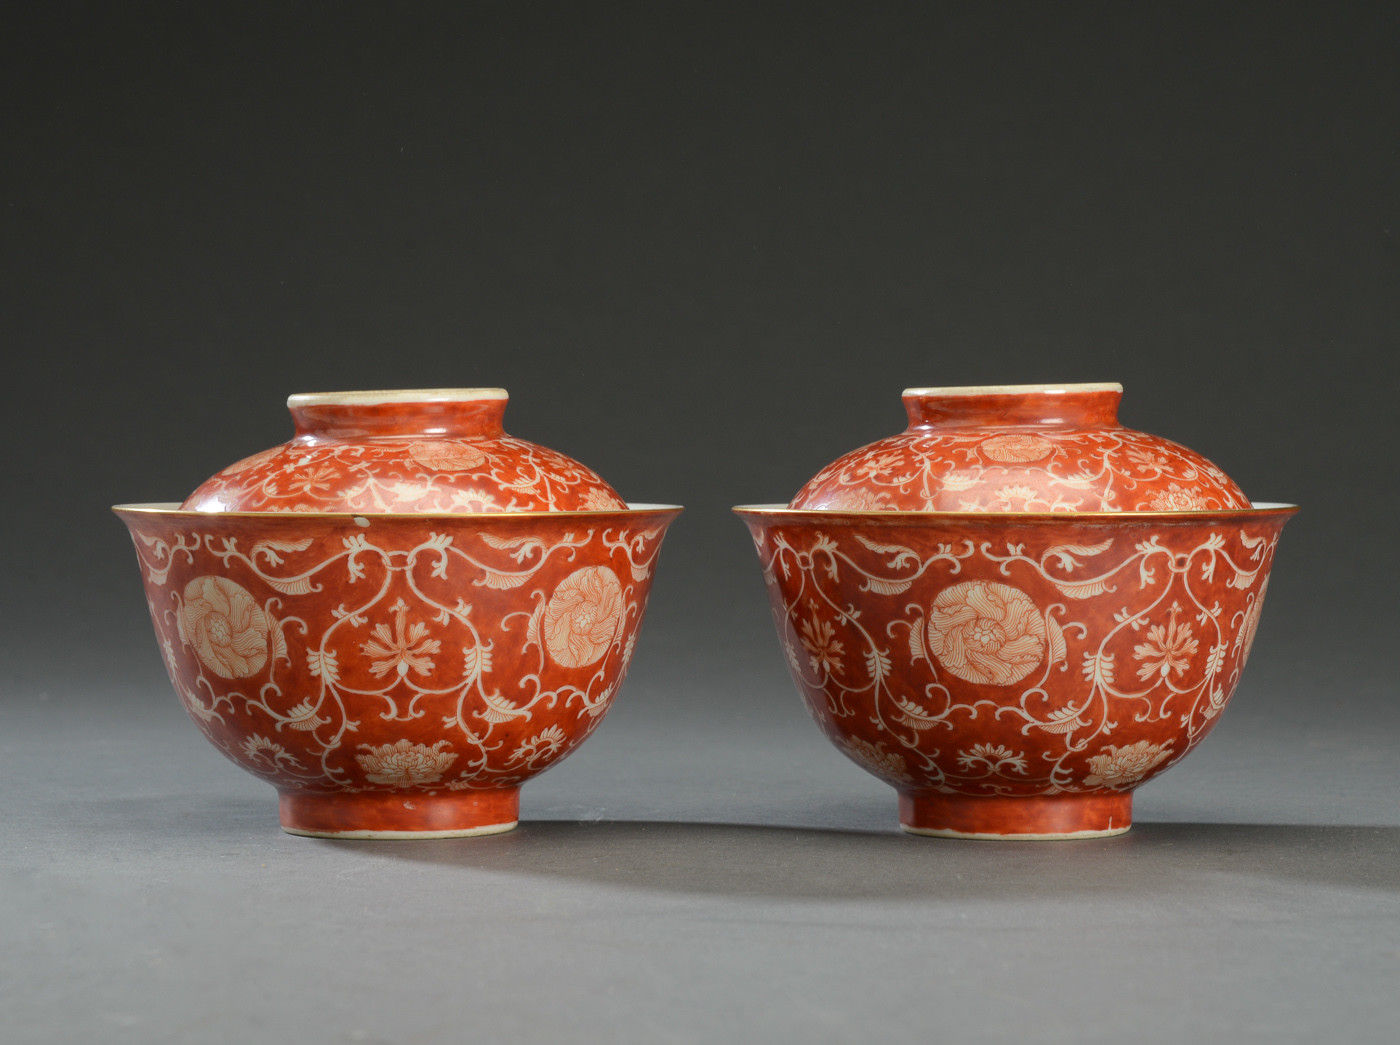 Fine Amp Rare Pair Of Antique Chinese Qing Dynasty Bowls